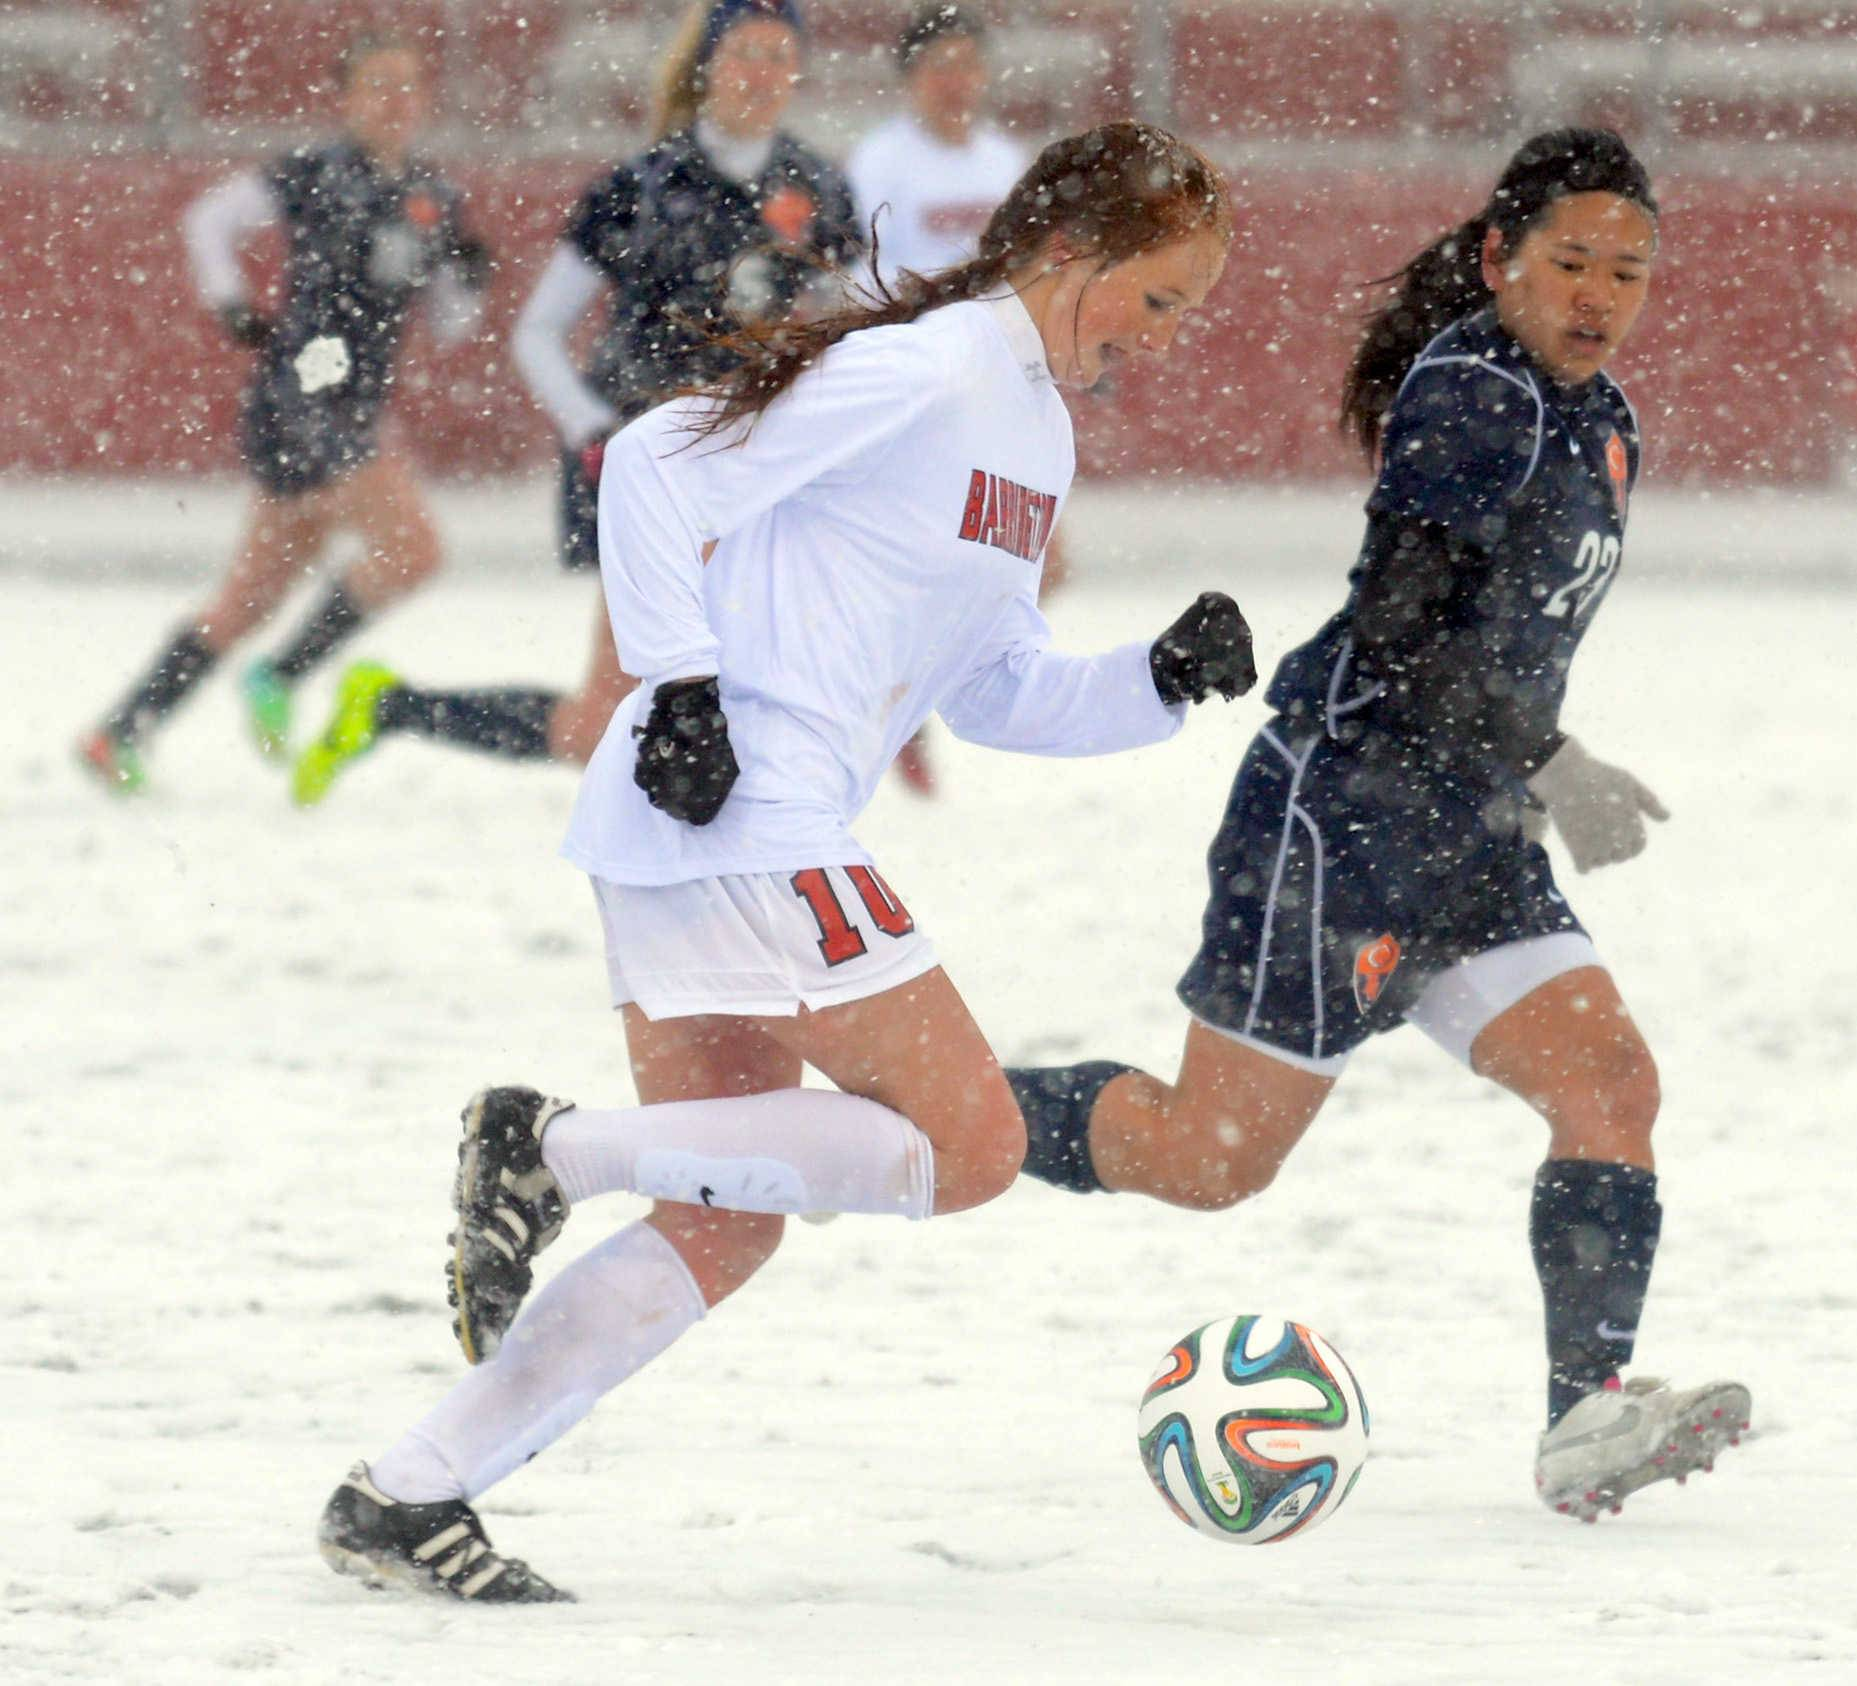 Barrington's Carrie Madden, left, moves the ball as Buffalo Grove's Elizabeth Chan defends Monday at Barrington.